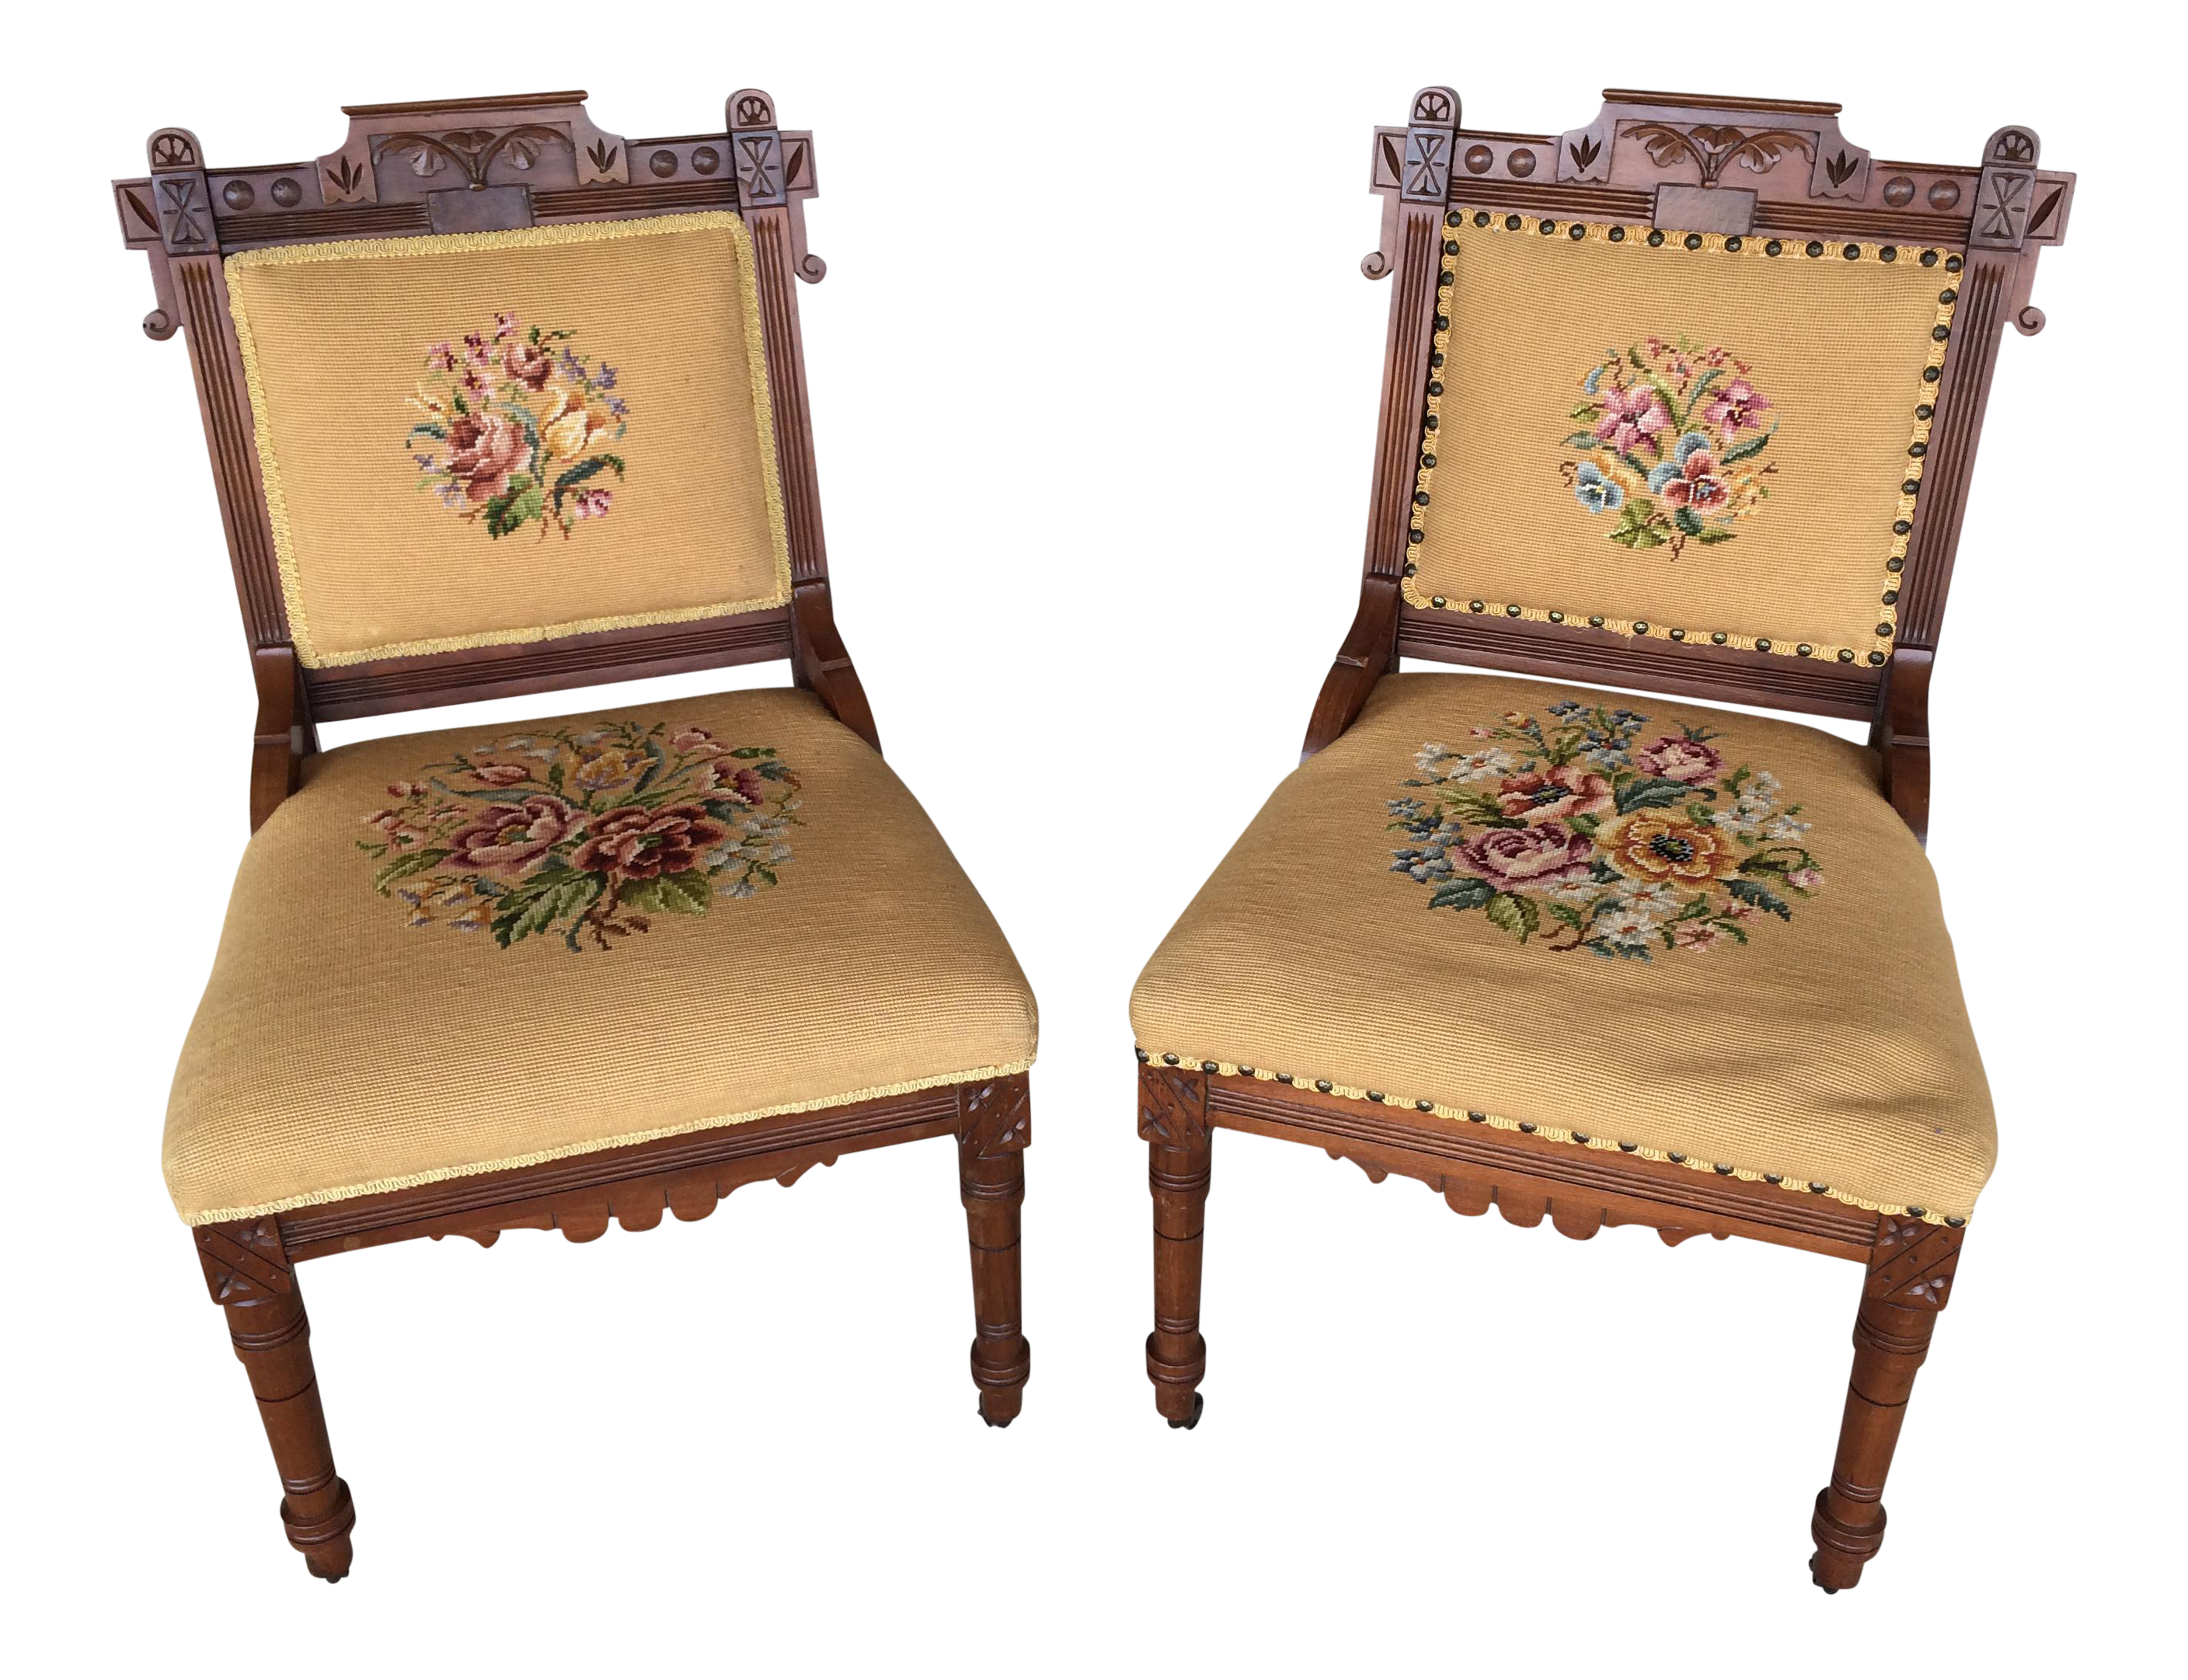 Furniture clipart victorian furniture. Chair accent red velvet